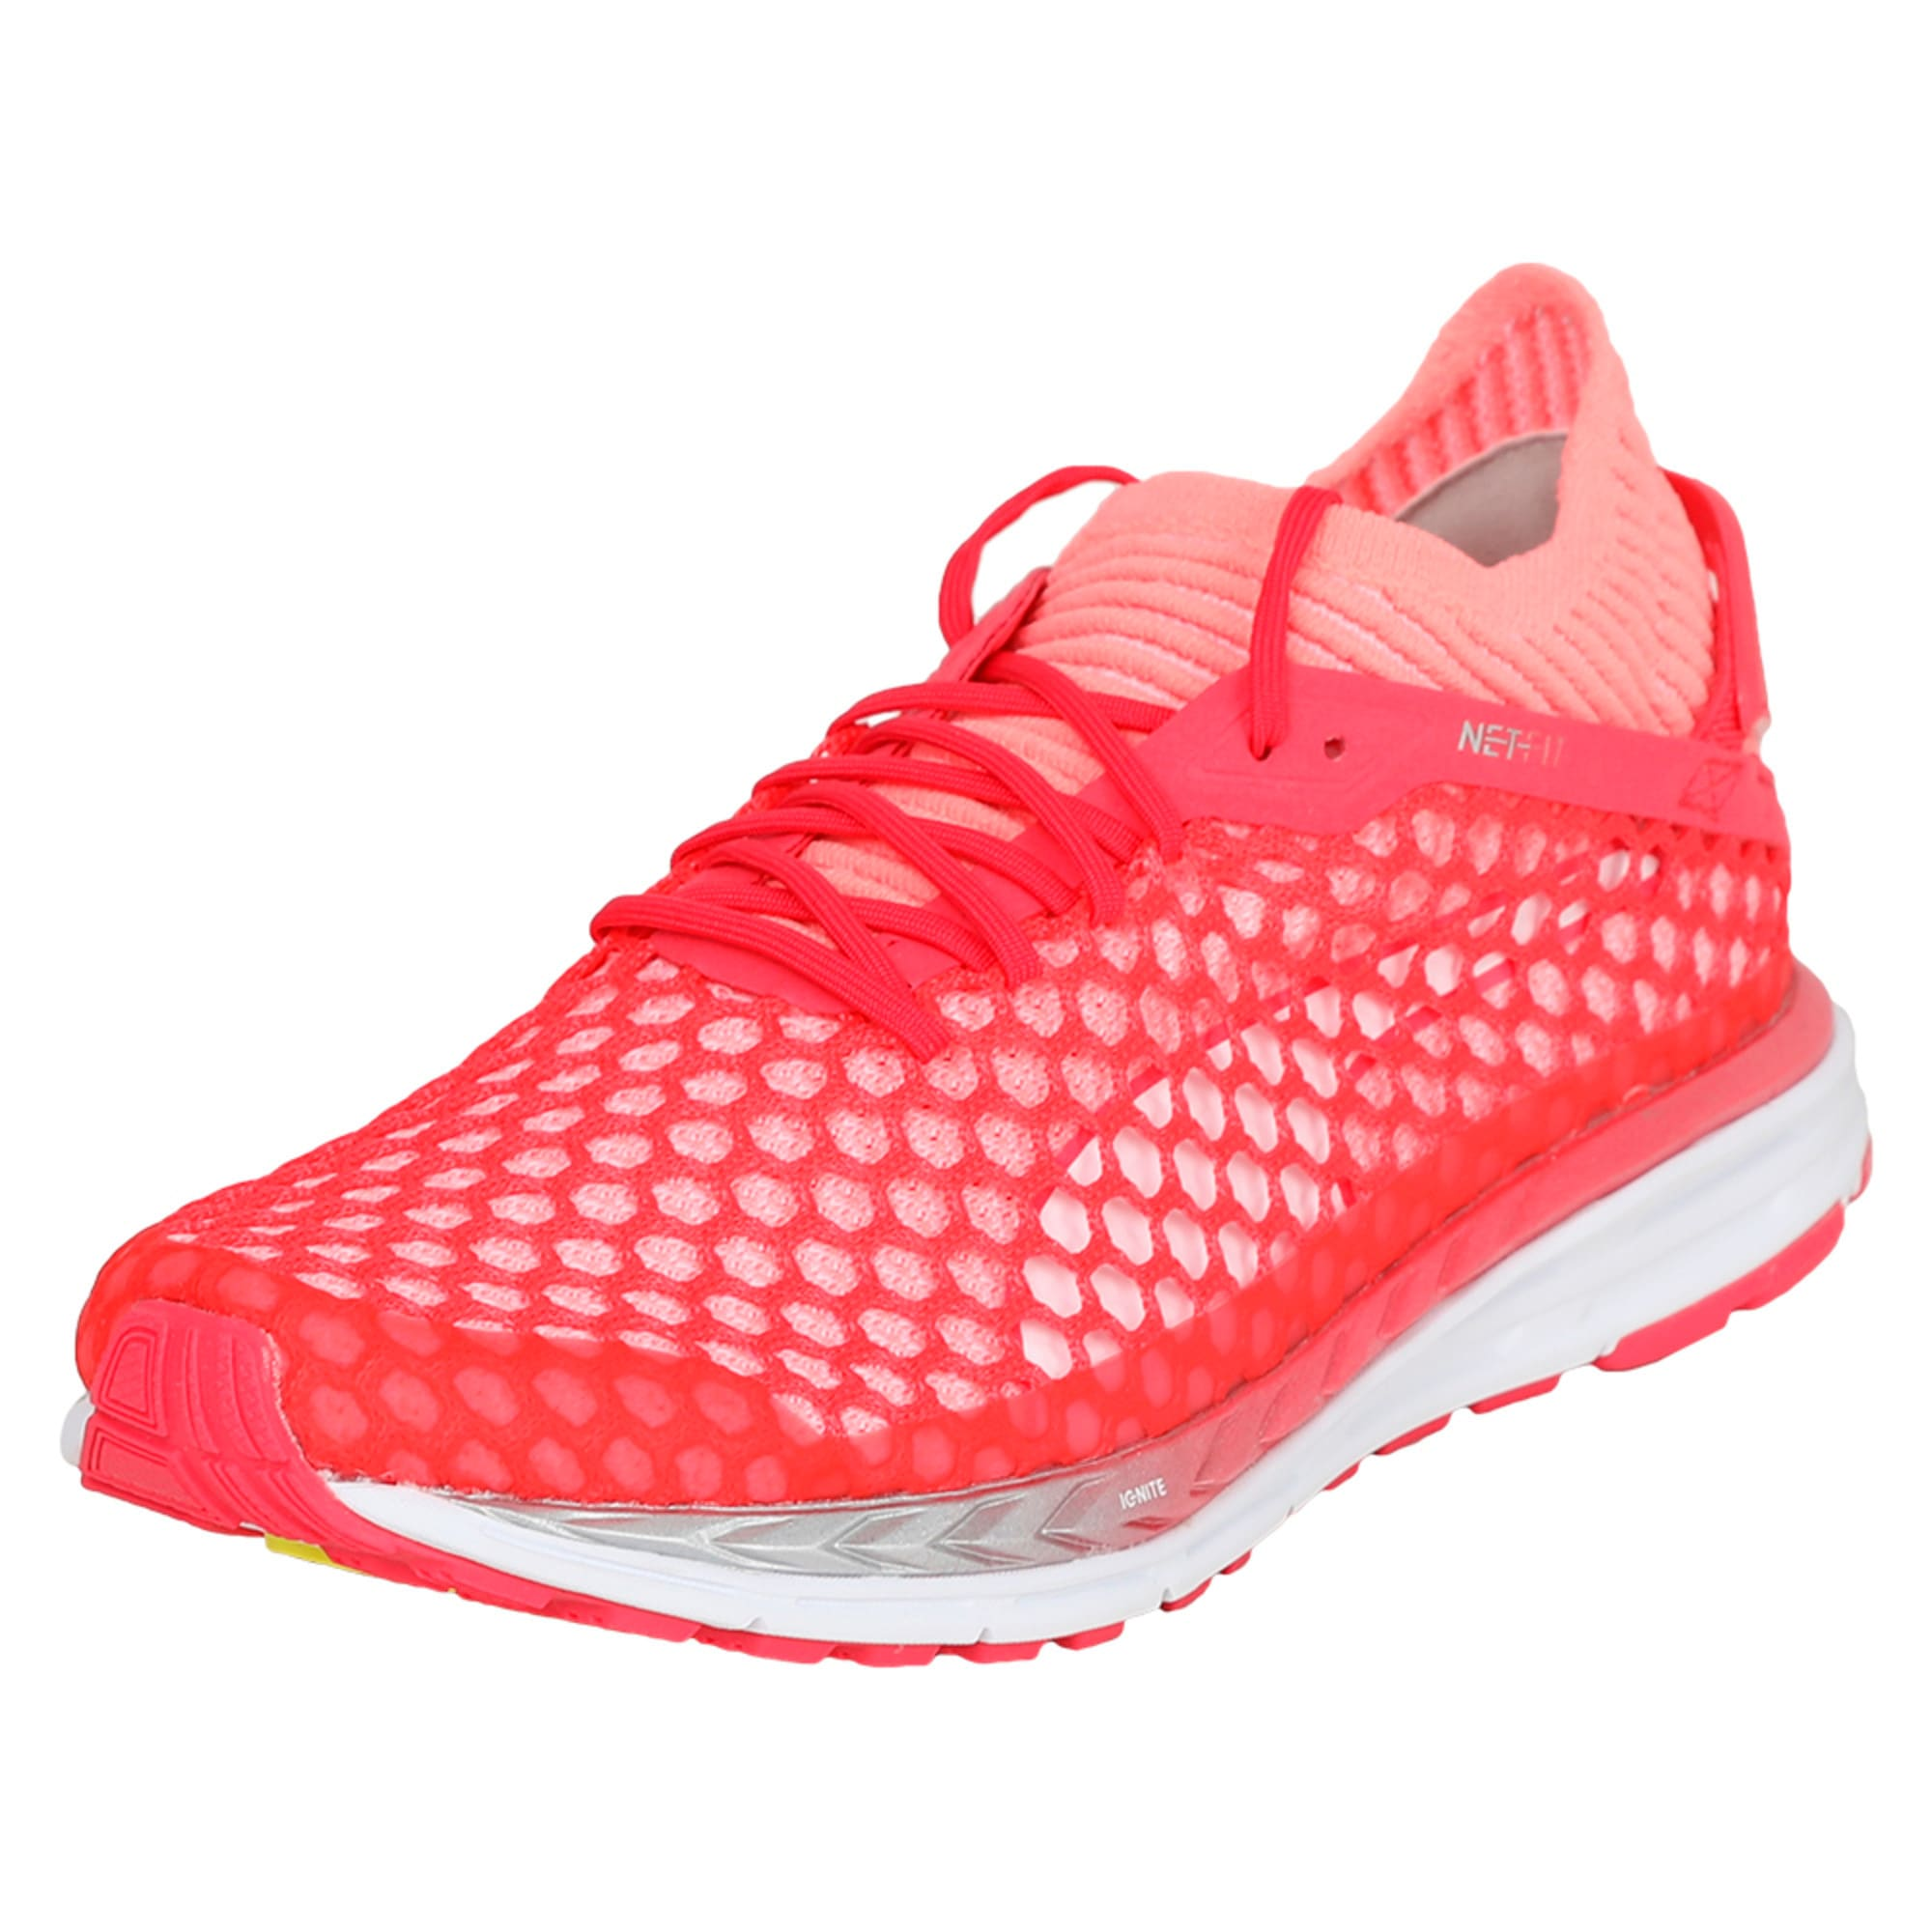 Thumbnail 1 of Speed IGNITE NETFIT 2 Women's Running Shoes, Pink-Fluo Peach-White, medium-IND